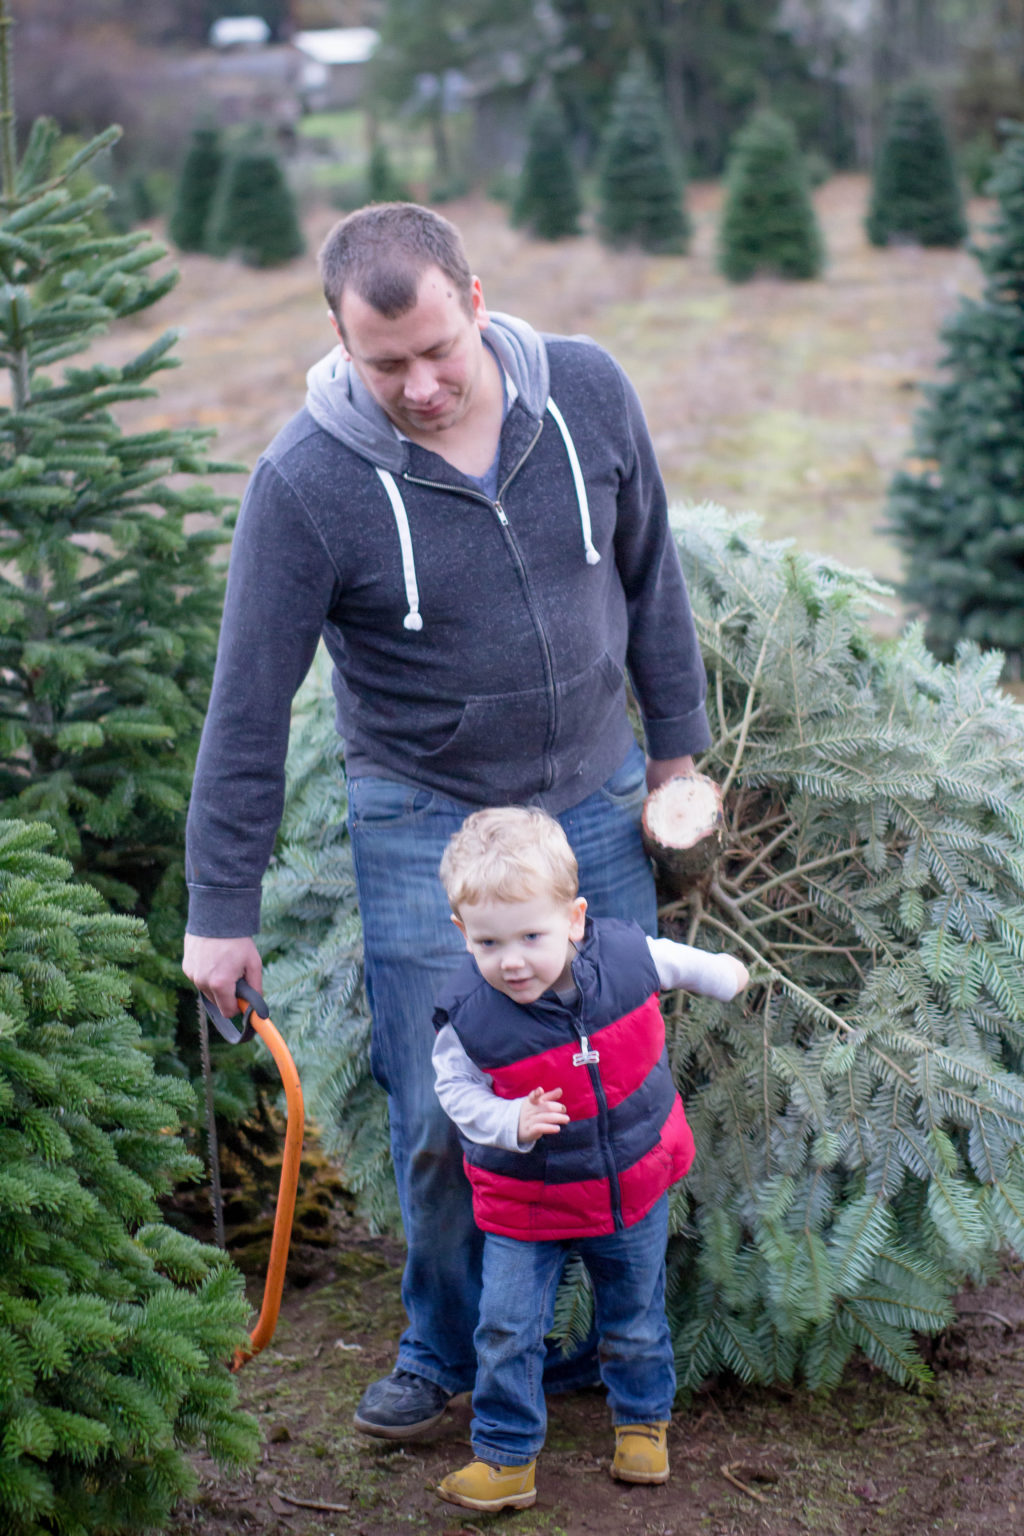 Finding a live Christmas tree is a wondeful Christmas tradition